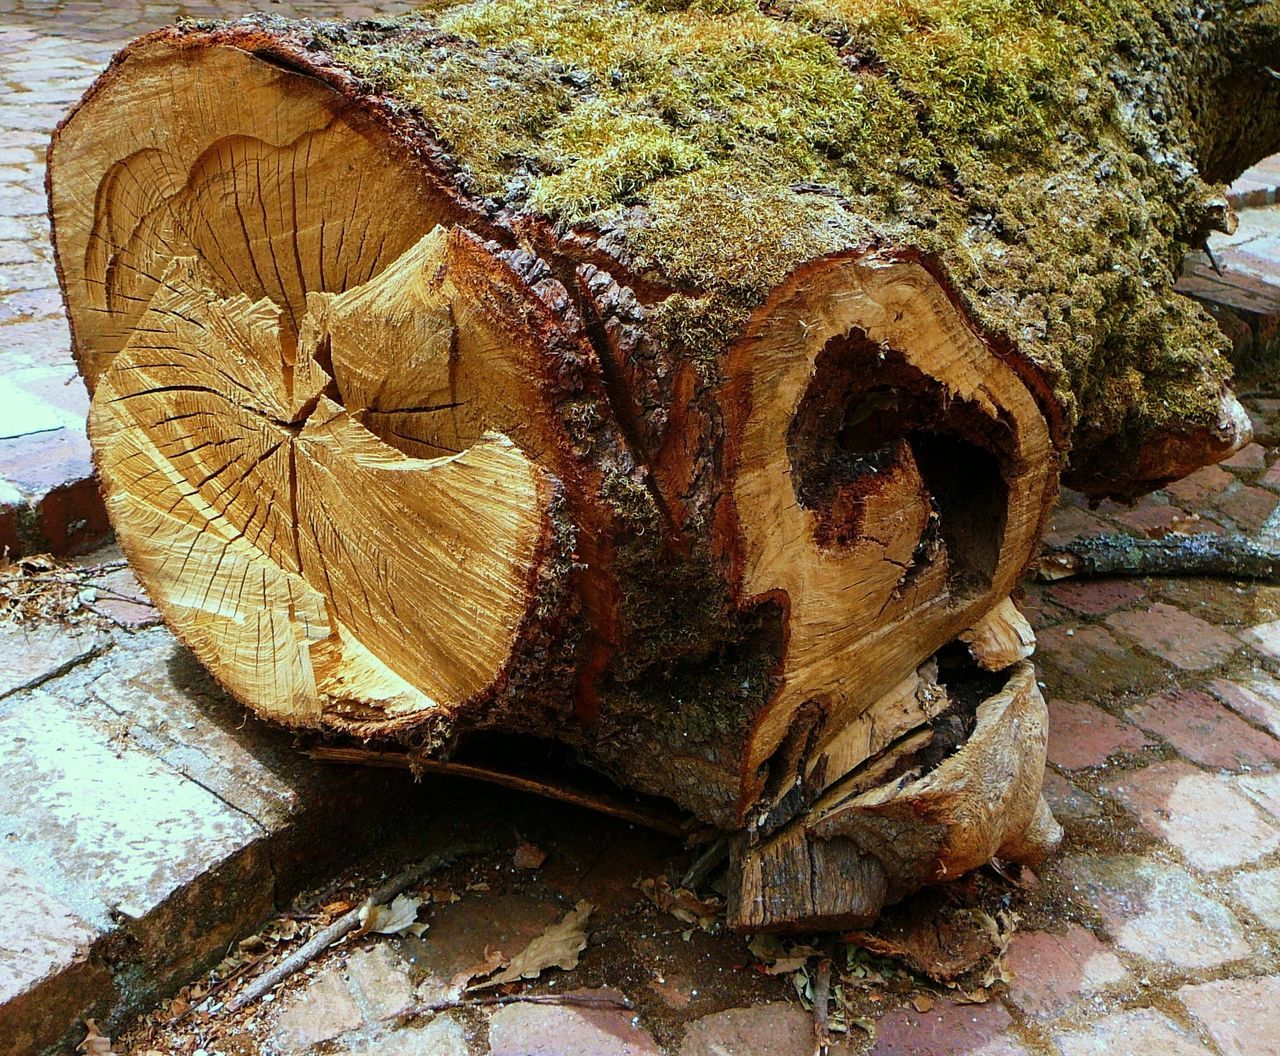 wood - material, log, day, no people, tree stump, nature, textured, close-up, outdoors, tree